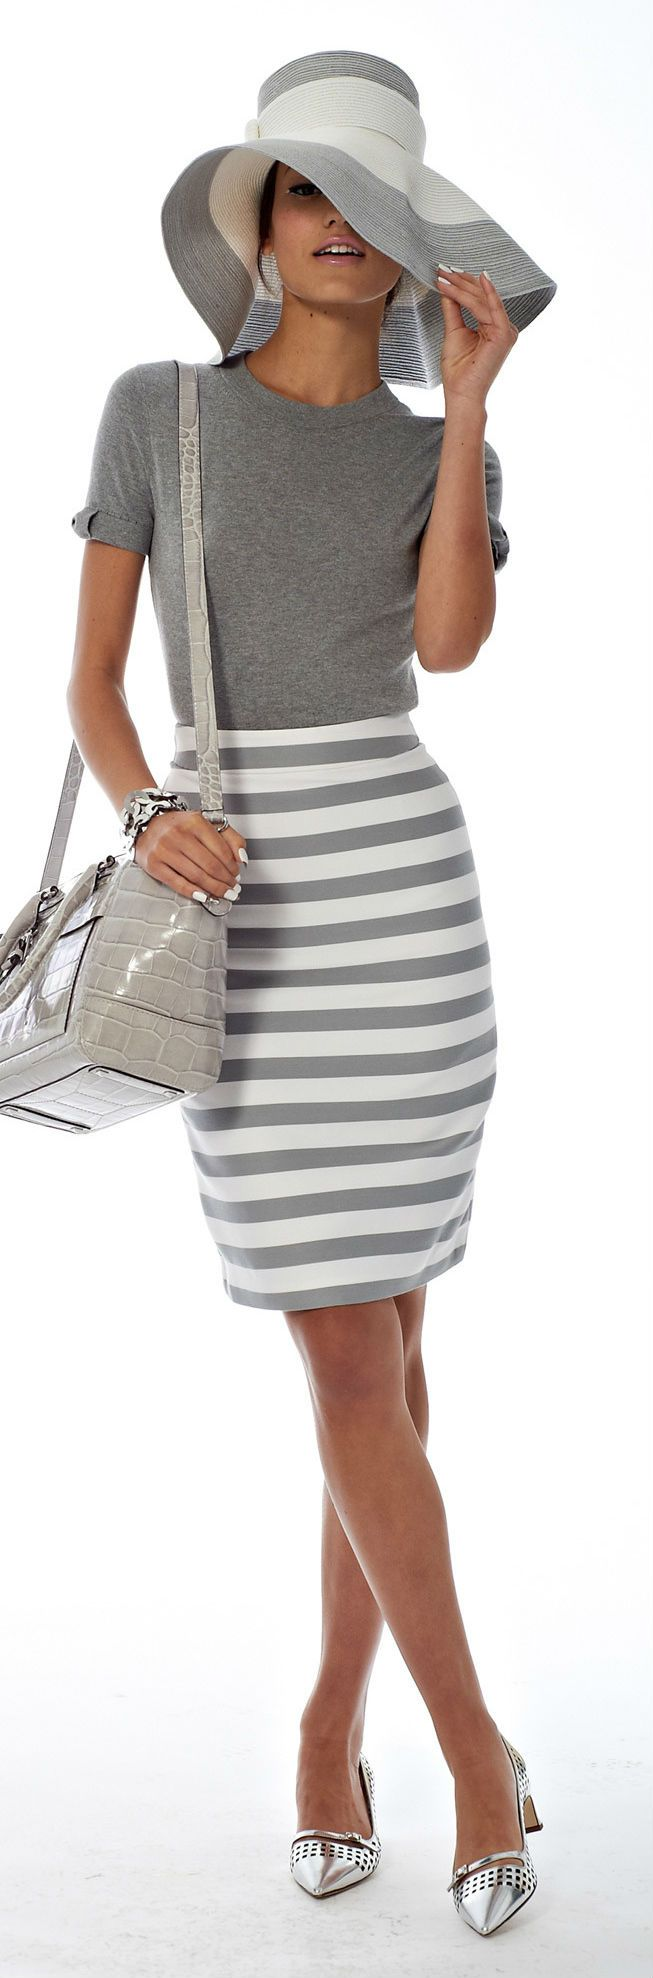 Sod wearing this to the races, I'd wear this normally. I love the casual refined look. And  dove grey stripes are gorgeous!